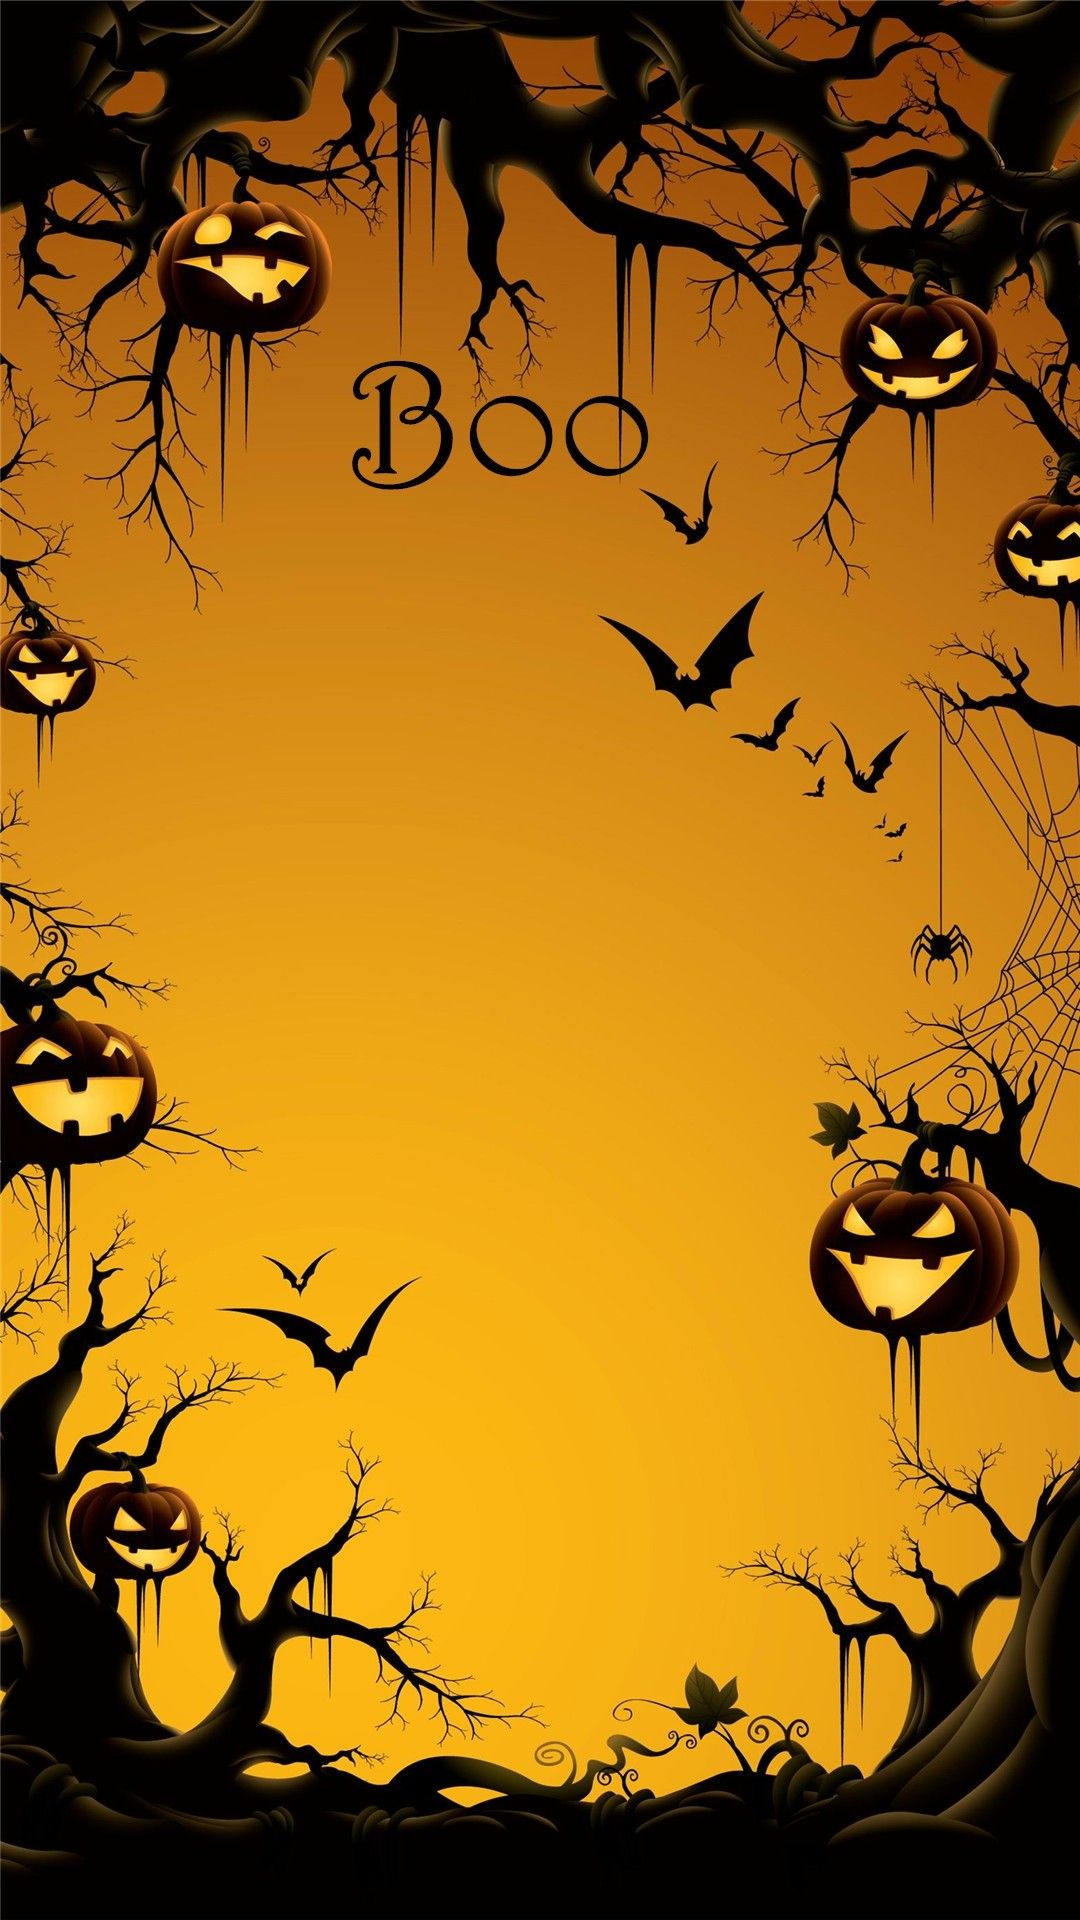 2014 Boo Halloween iPhone 6 plus wallpaper with pumpkin on